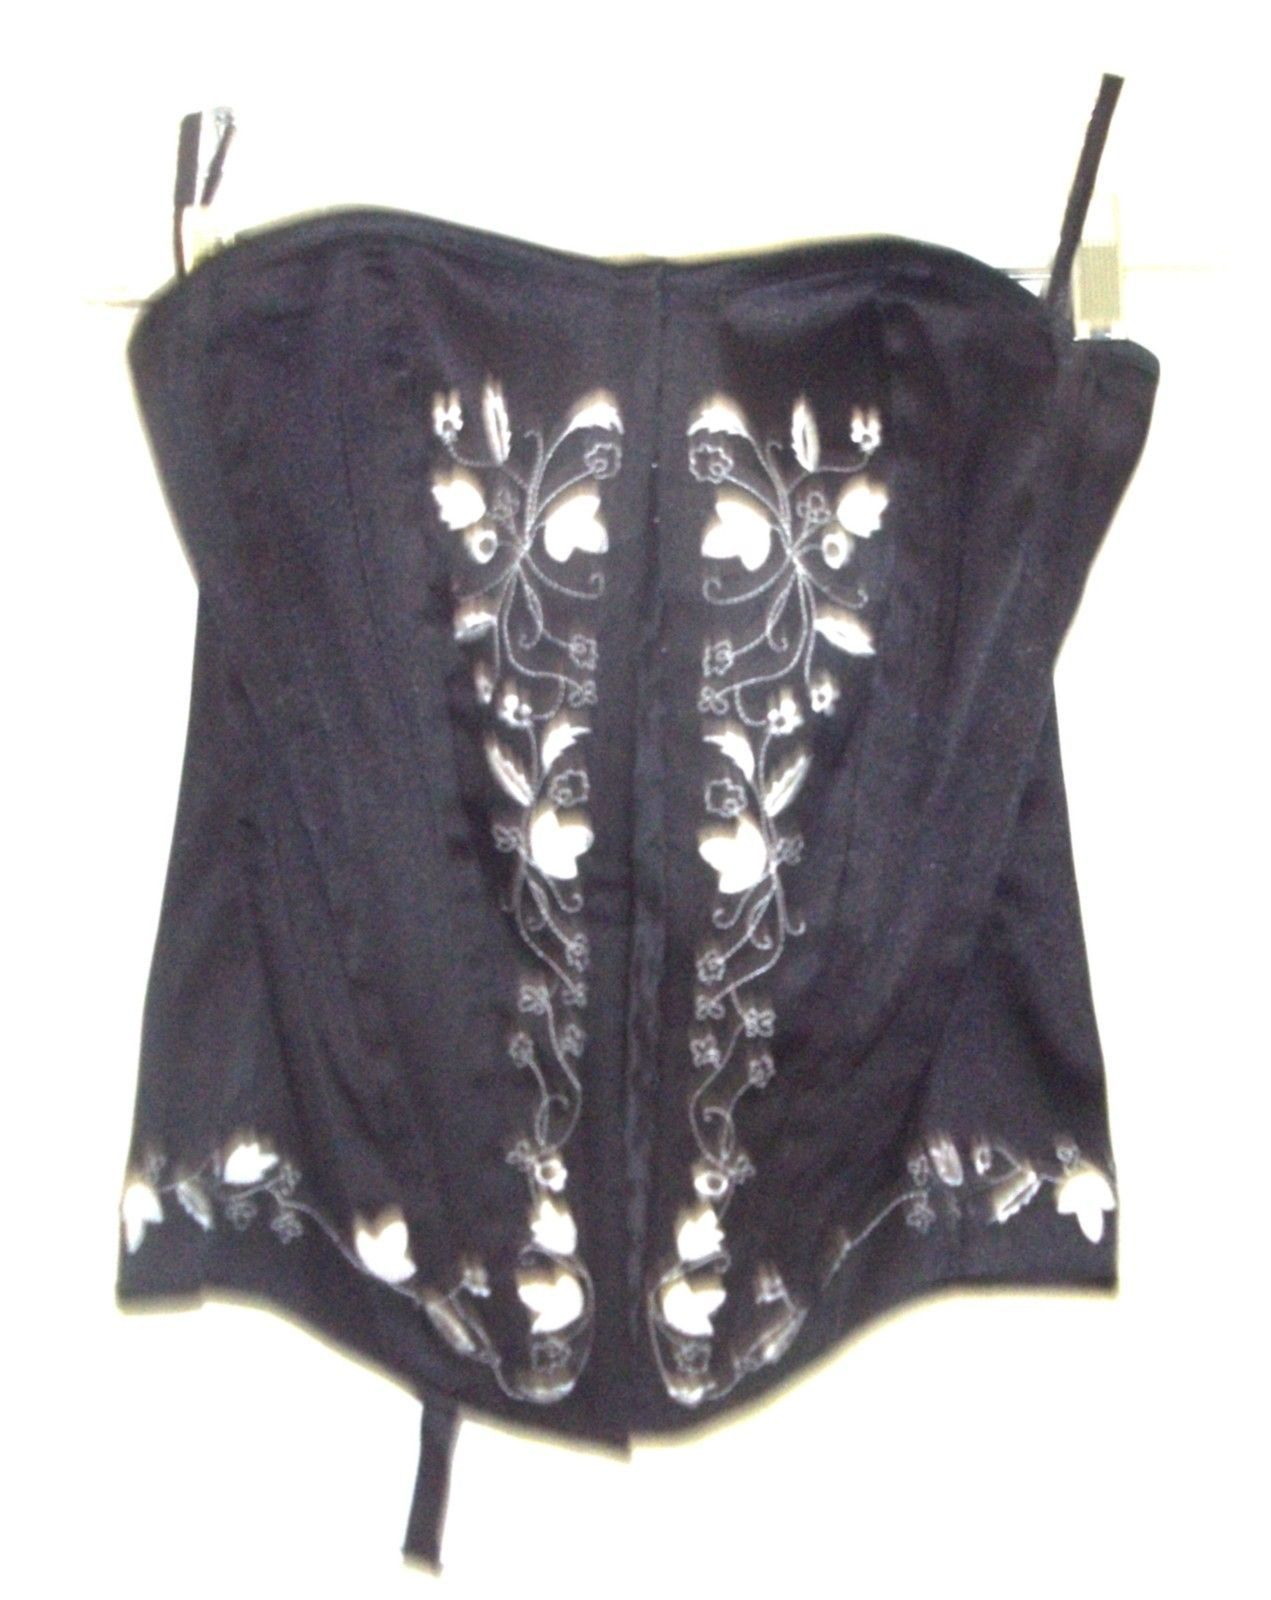 ddf763570fd Charlotte Russe Lace Up Bustier Corsets w Hooks   Eyes Size S-M